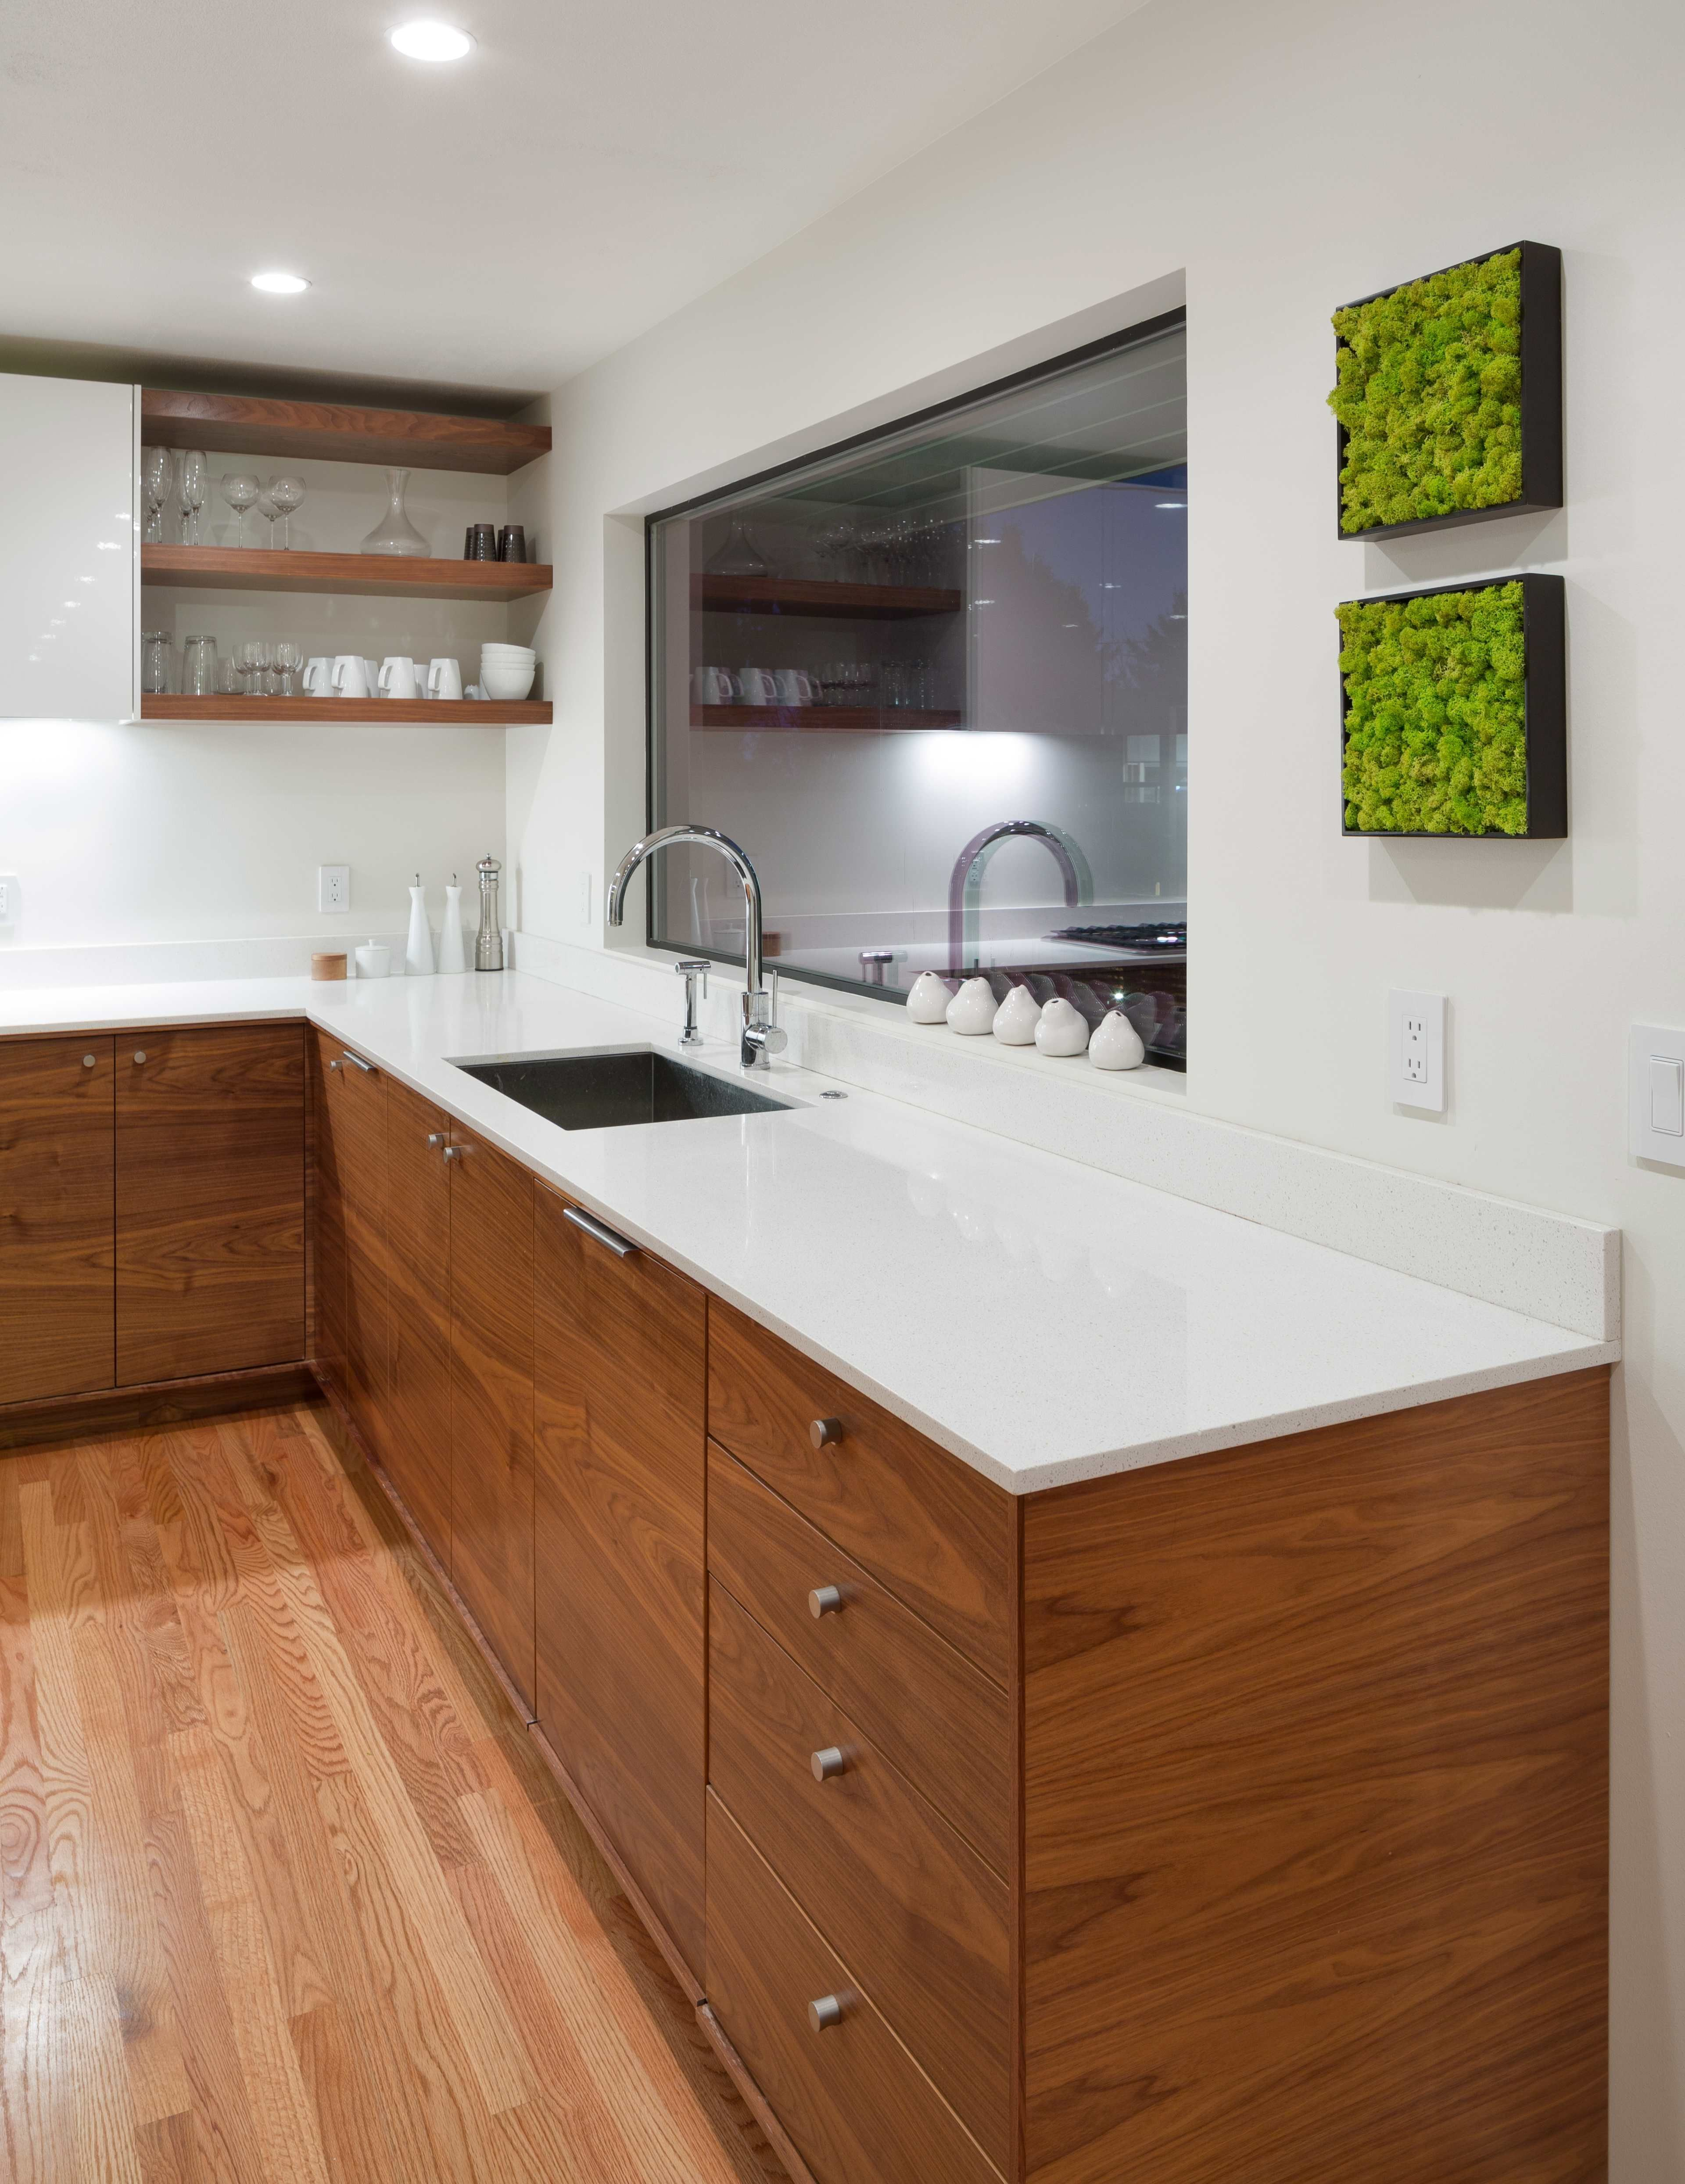 Pin By Vanillawood On Design Build Walnut Kitchen Cabinets